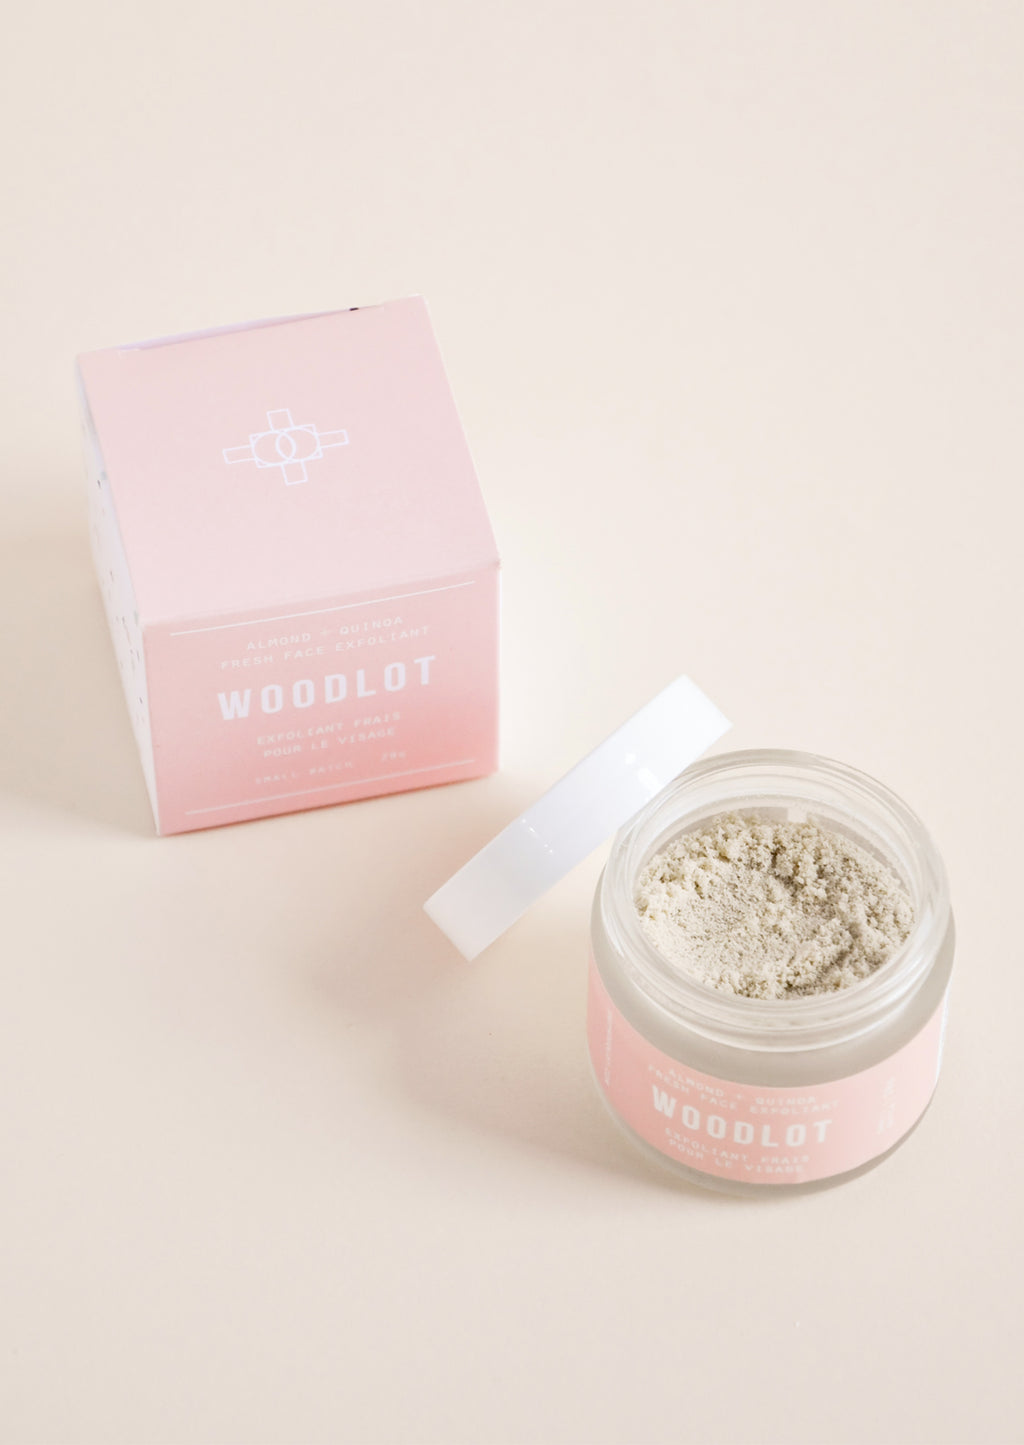 Woodlot Facial Exfoliating Grains